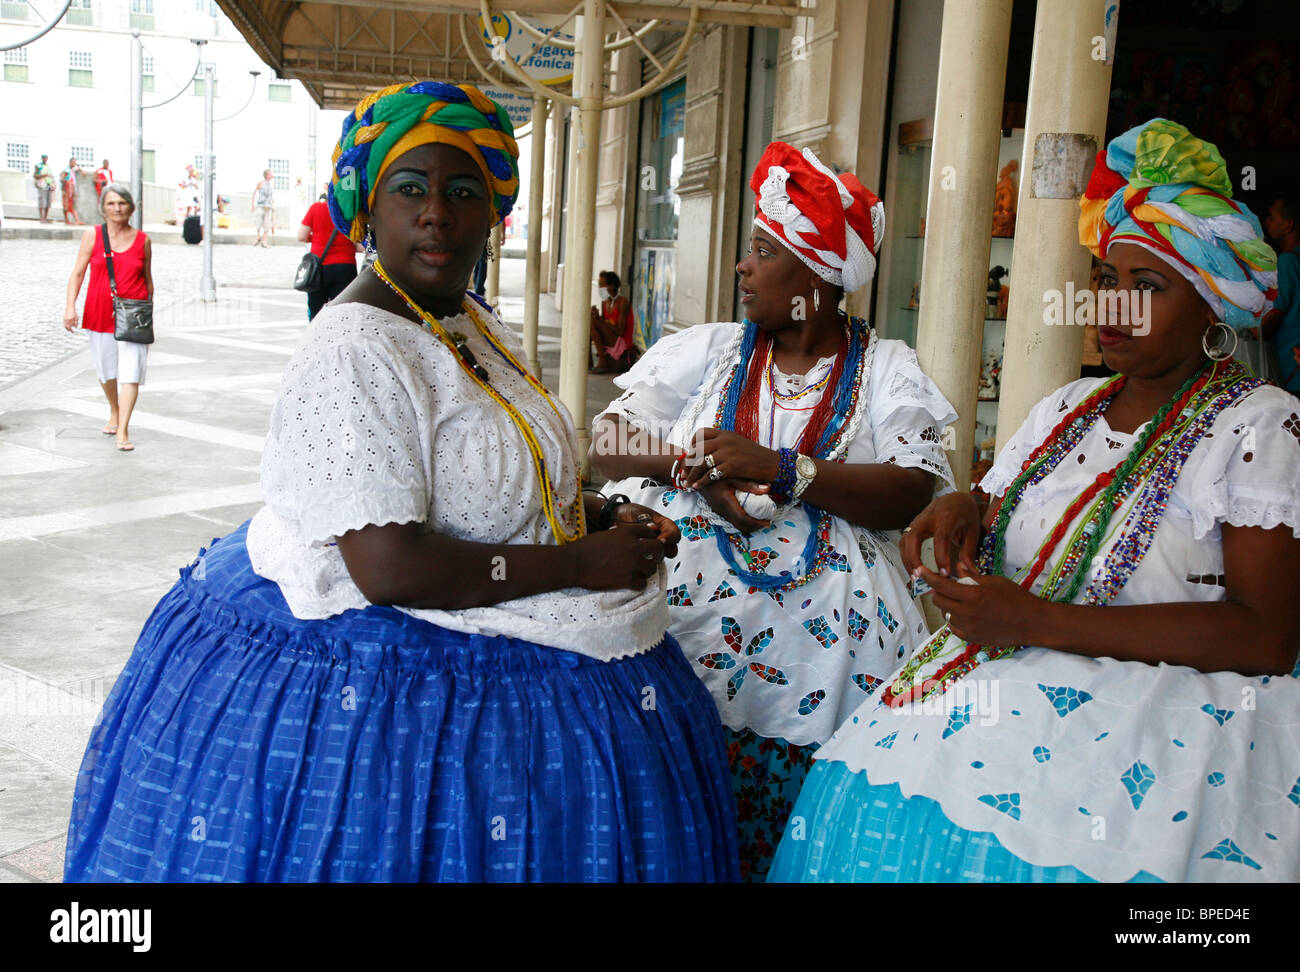 bahia girls trancoso, in bahia province, was cut off from the rest of brazil until the 1970s  but then the hippies arrived georgina wilson-powell reports.